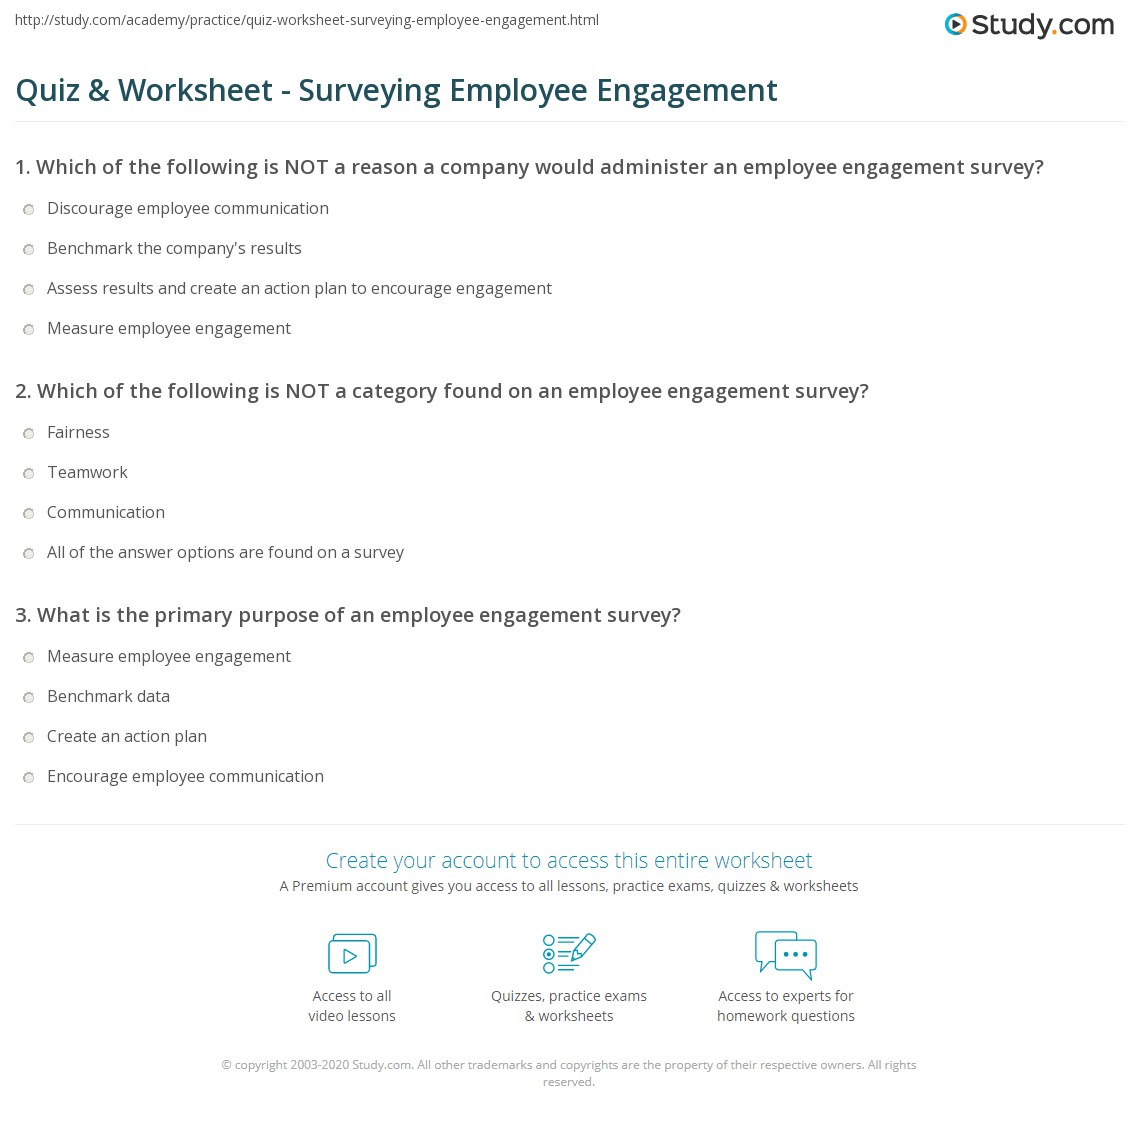 quiz worksheet surveying employee engagement. Black Bedroom Furniture Sets. Home Design Ideas